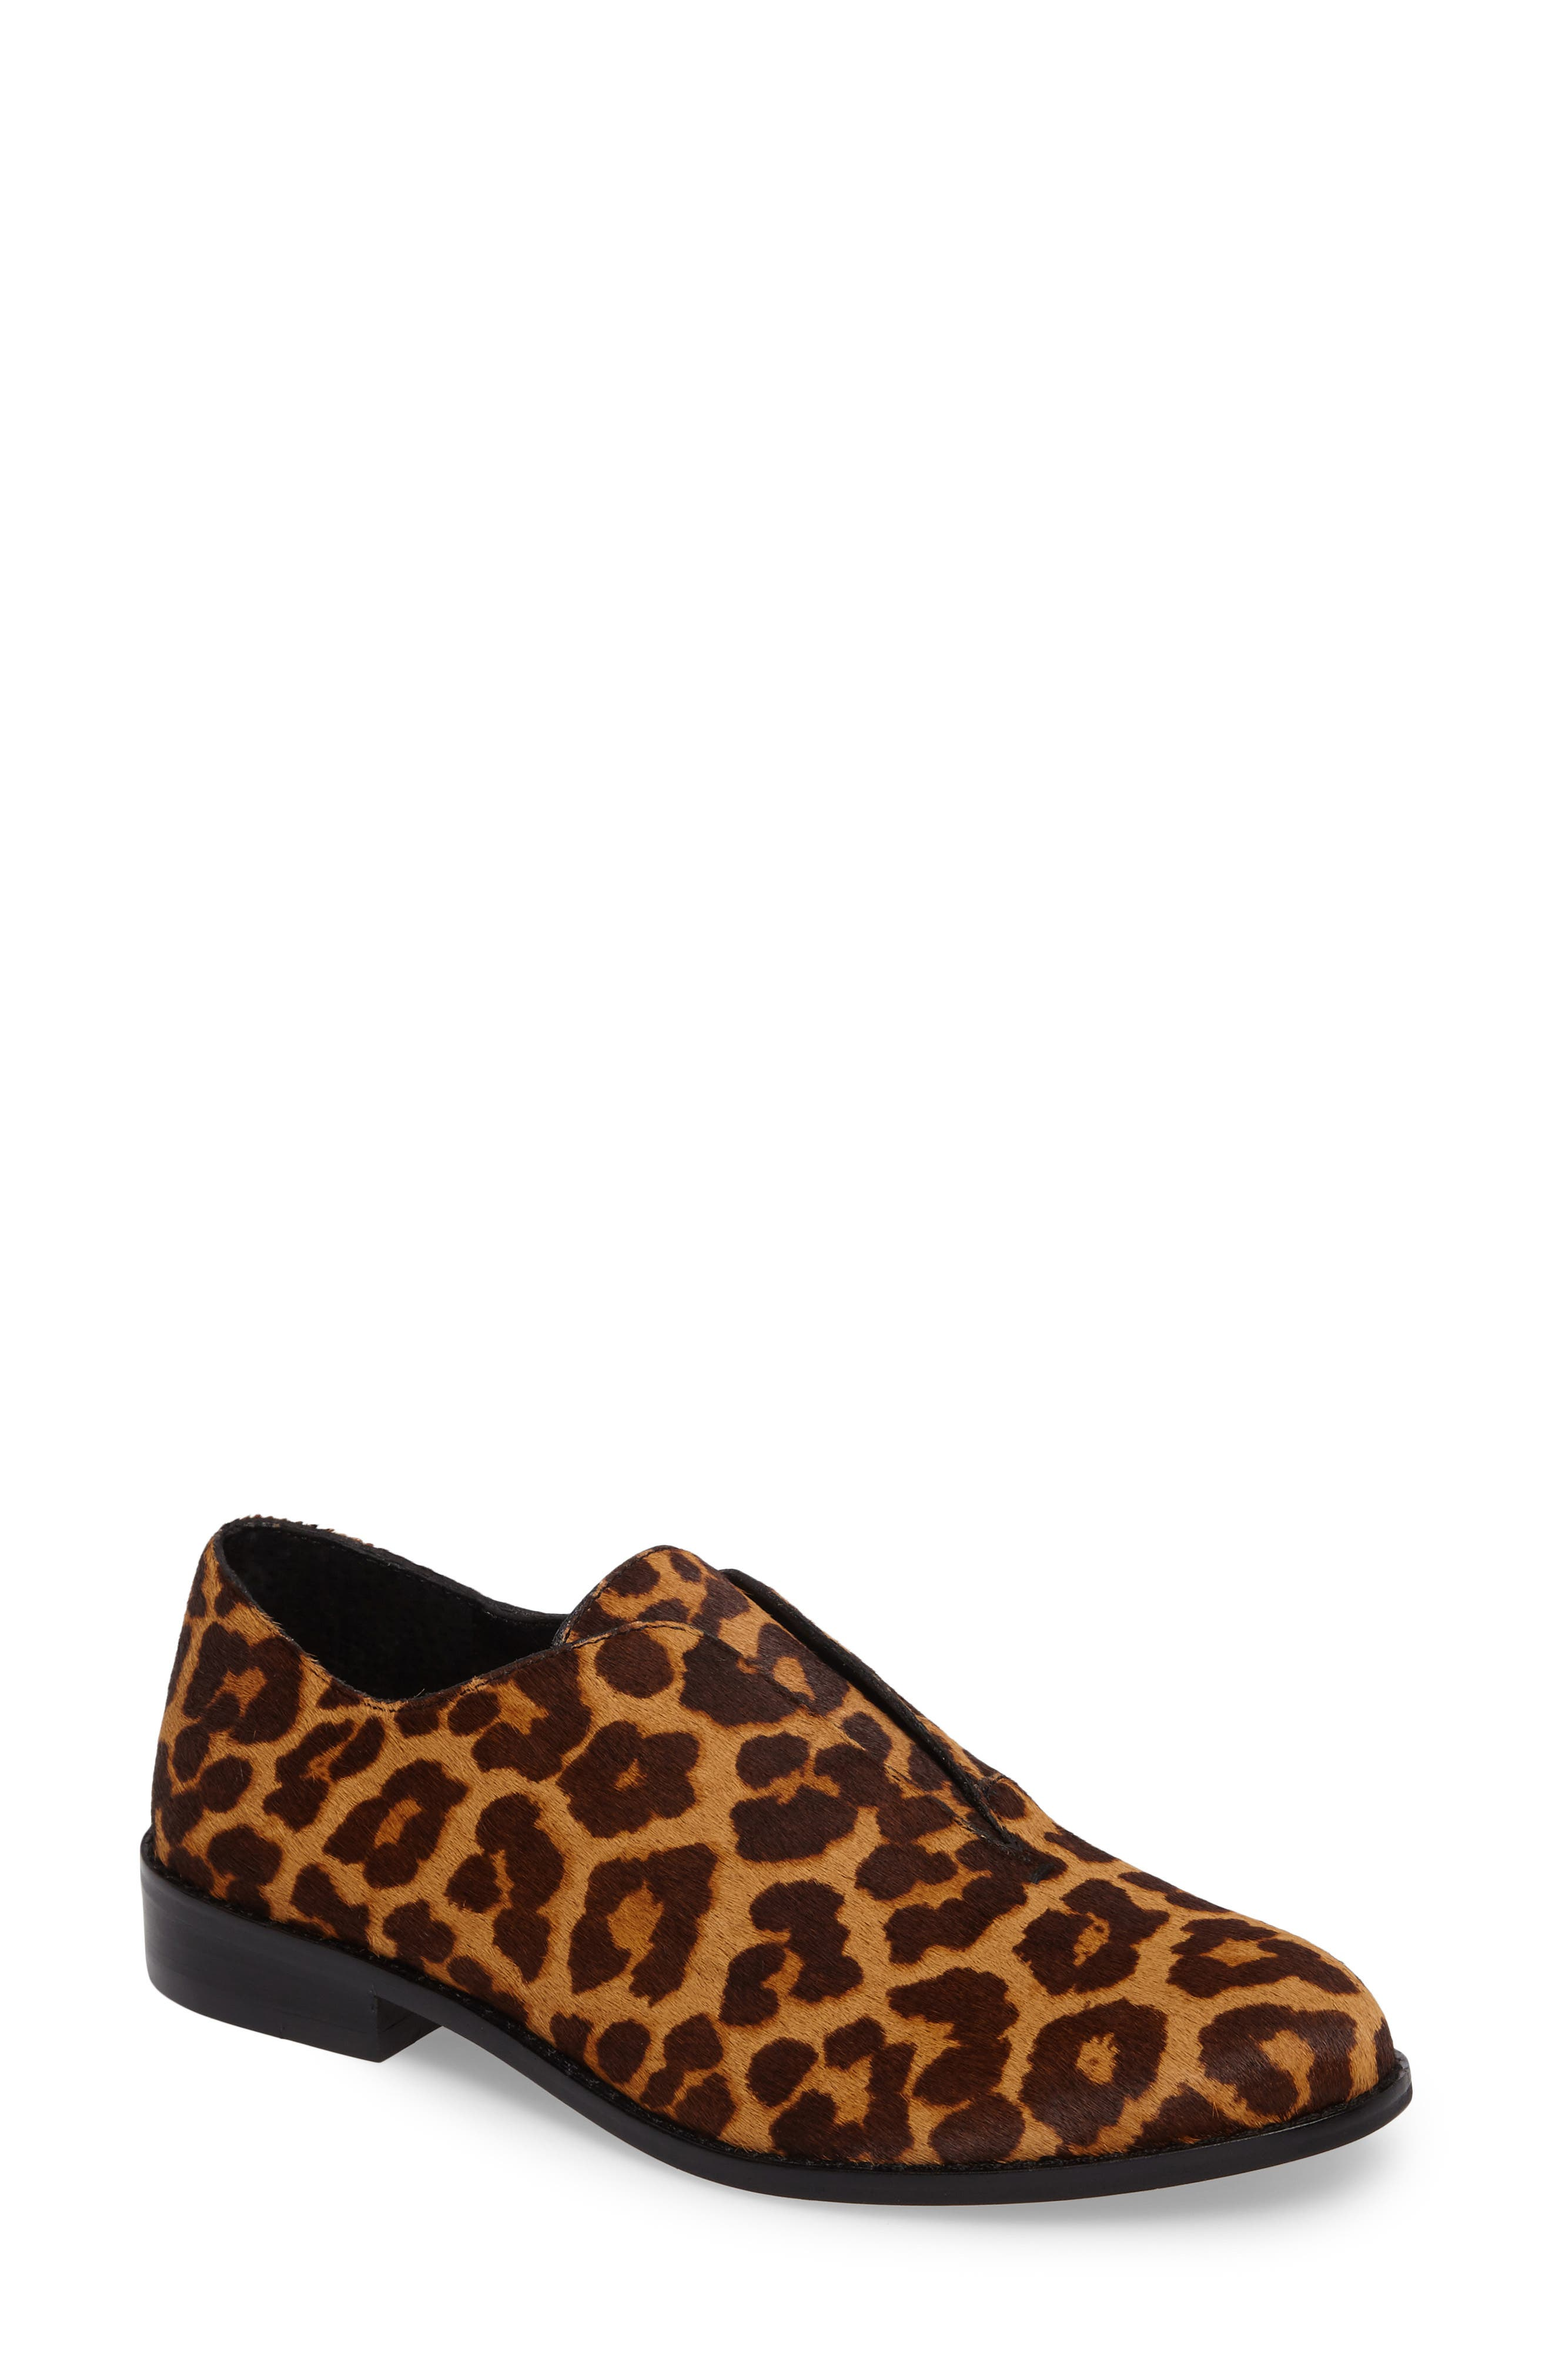 Alternate Image 1 Selected - 1.STATE Fiore Genuine Calf Hair Oxford Flat (Women)